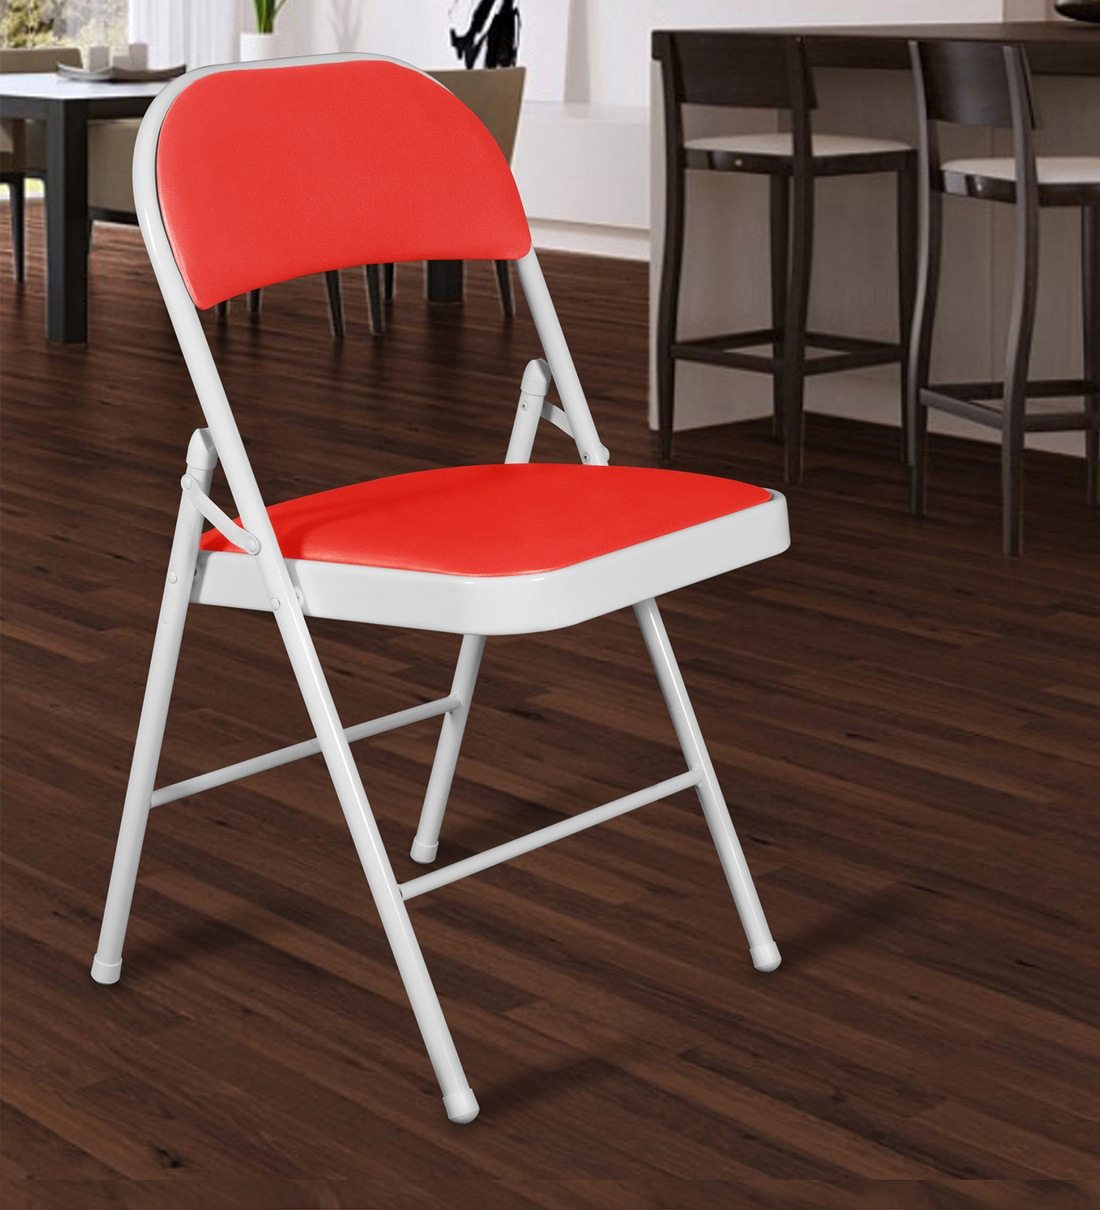 Buy Folding Metal Chair In White Red Colour By Story Home Online Metal Folding Chairs Chairs Furniture Pepperfry Product